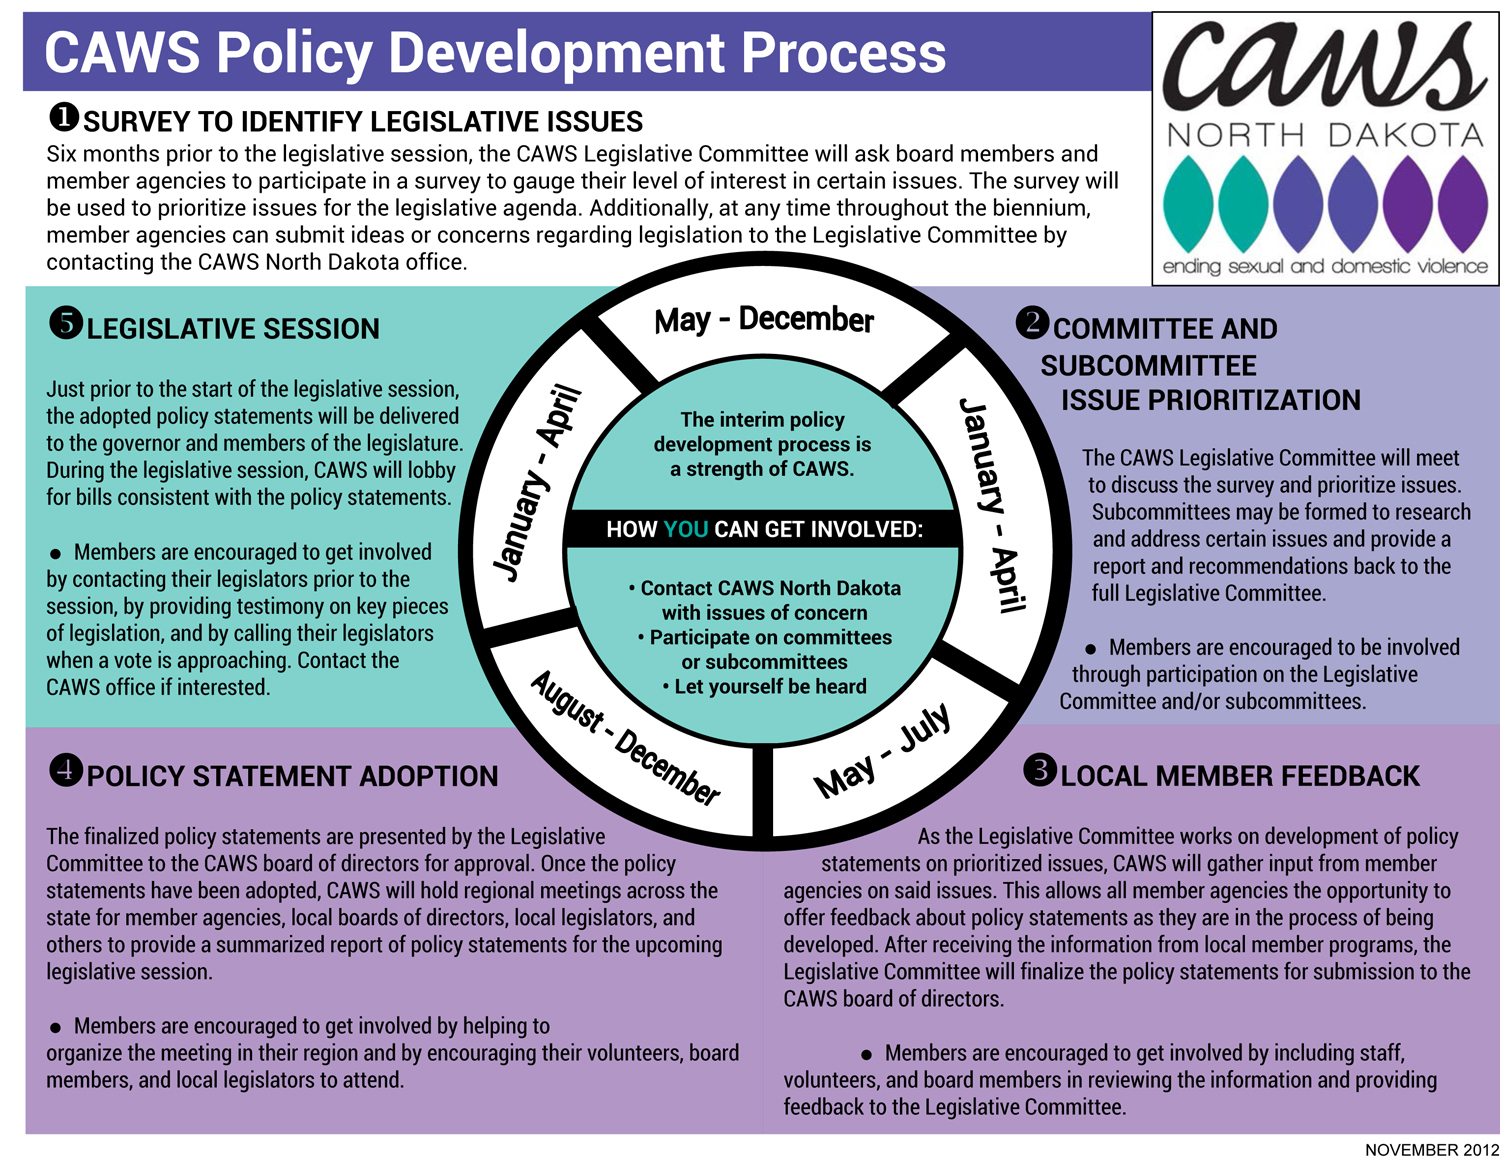 CAWS Policy Development